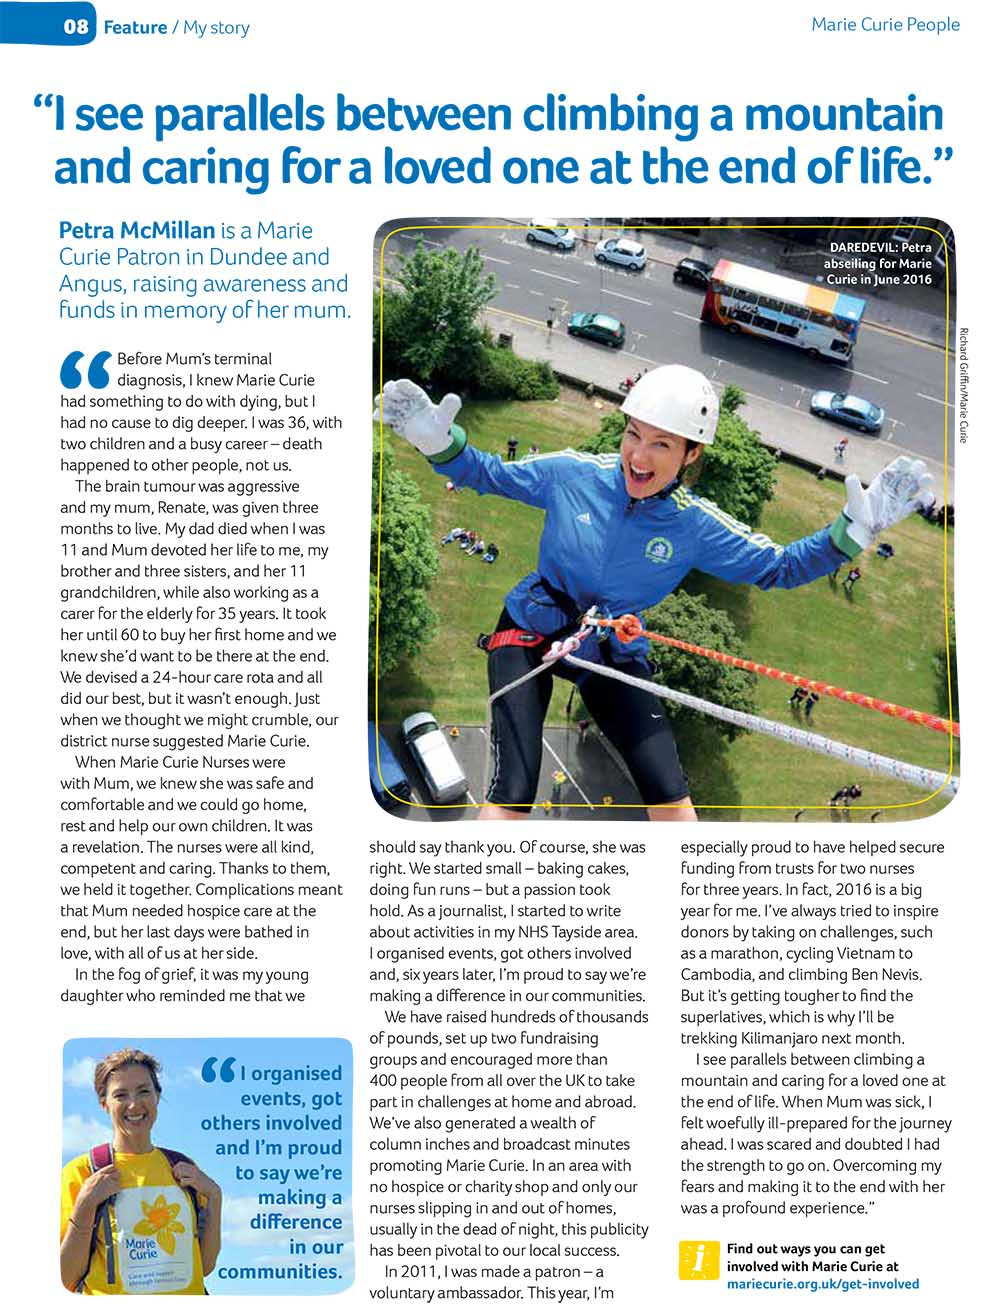 Marie Curie People magazine feature